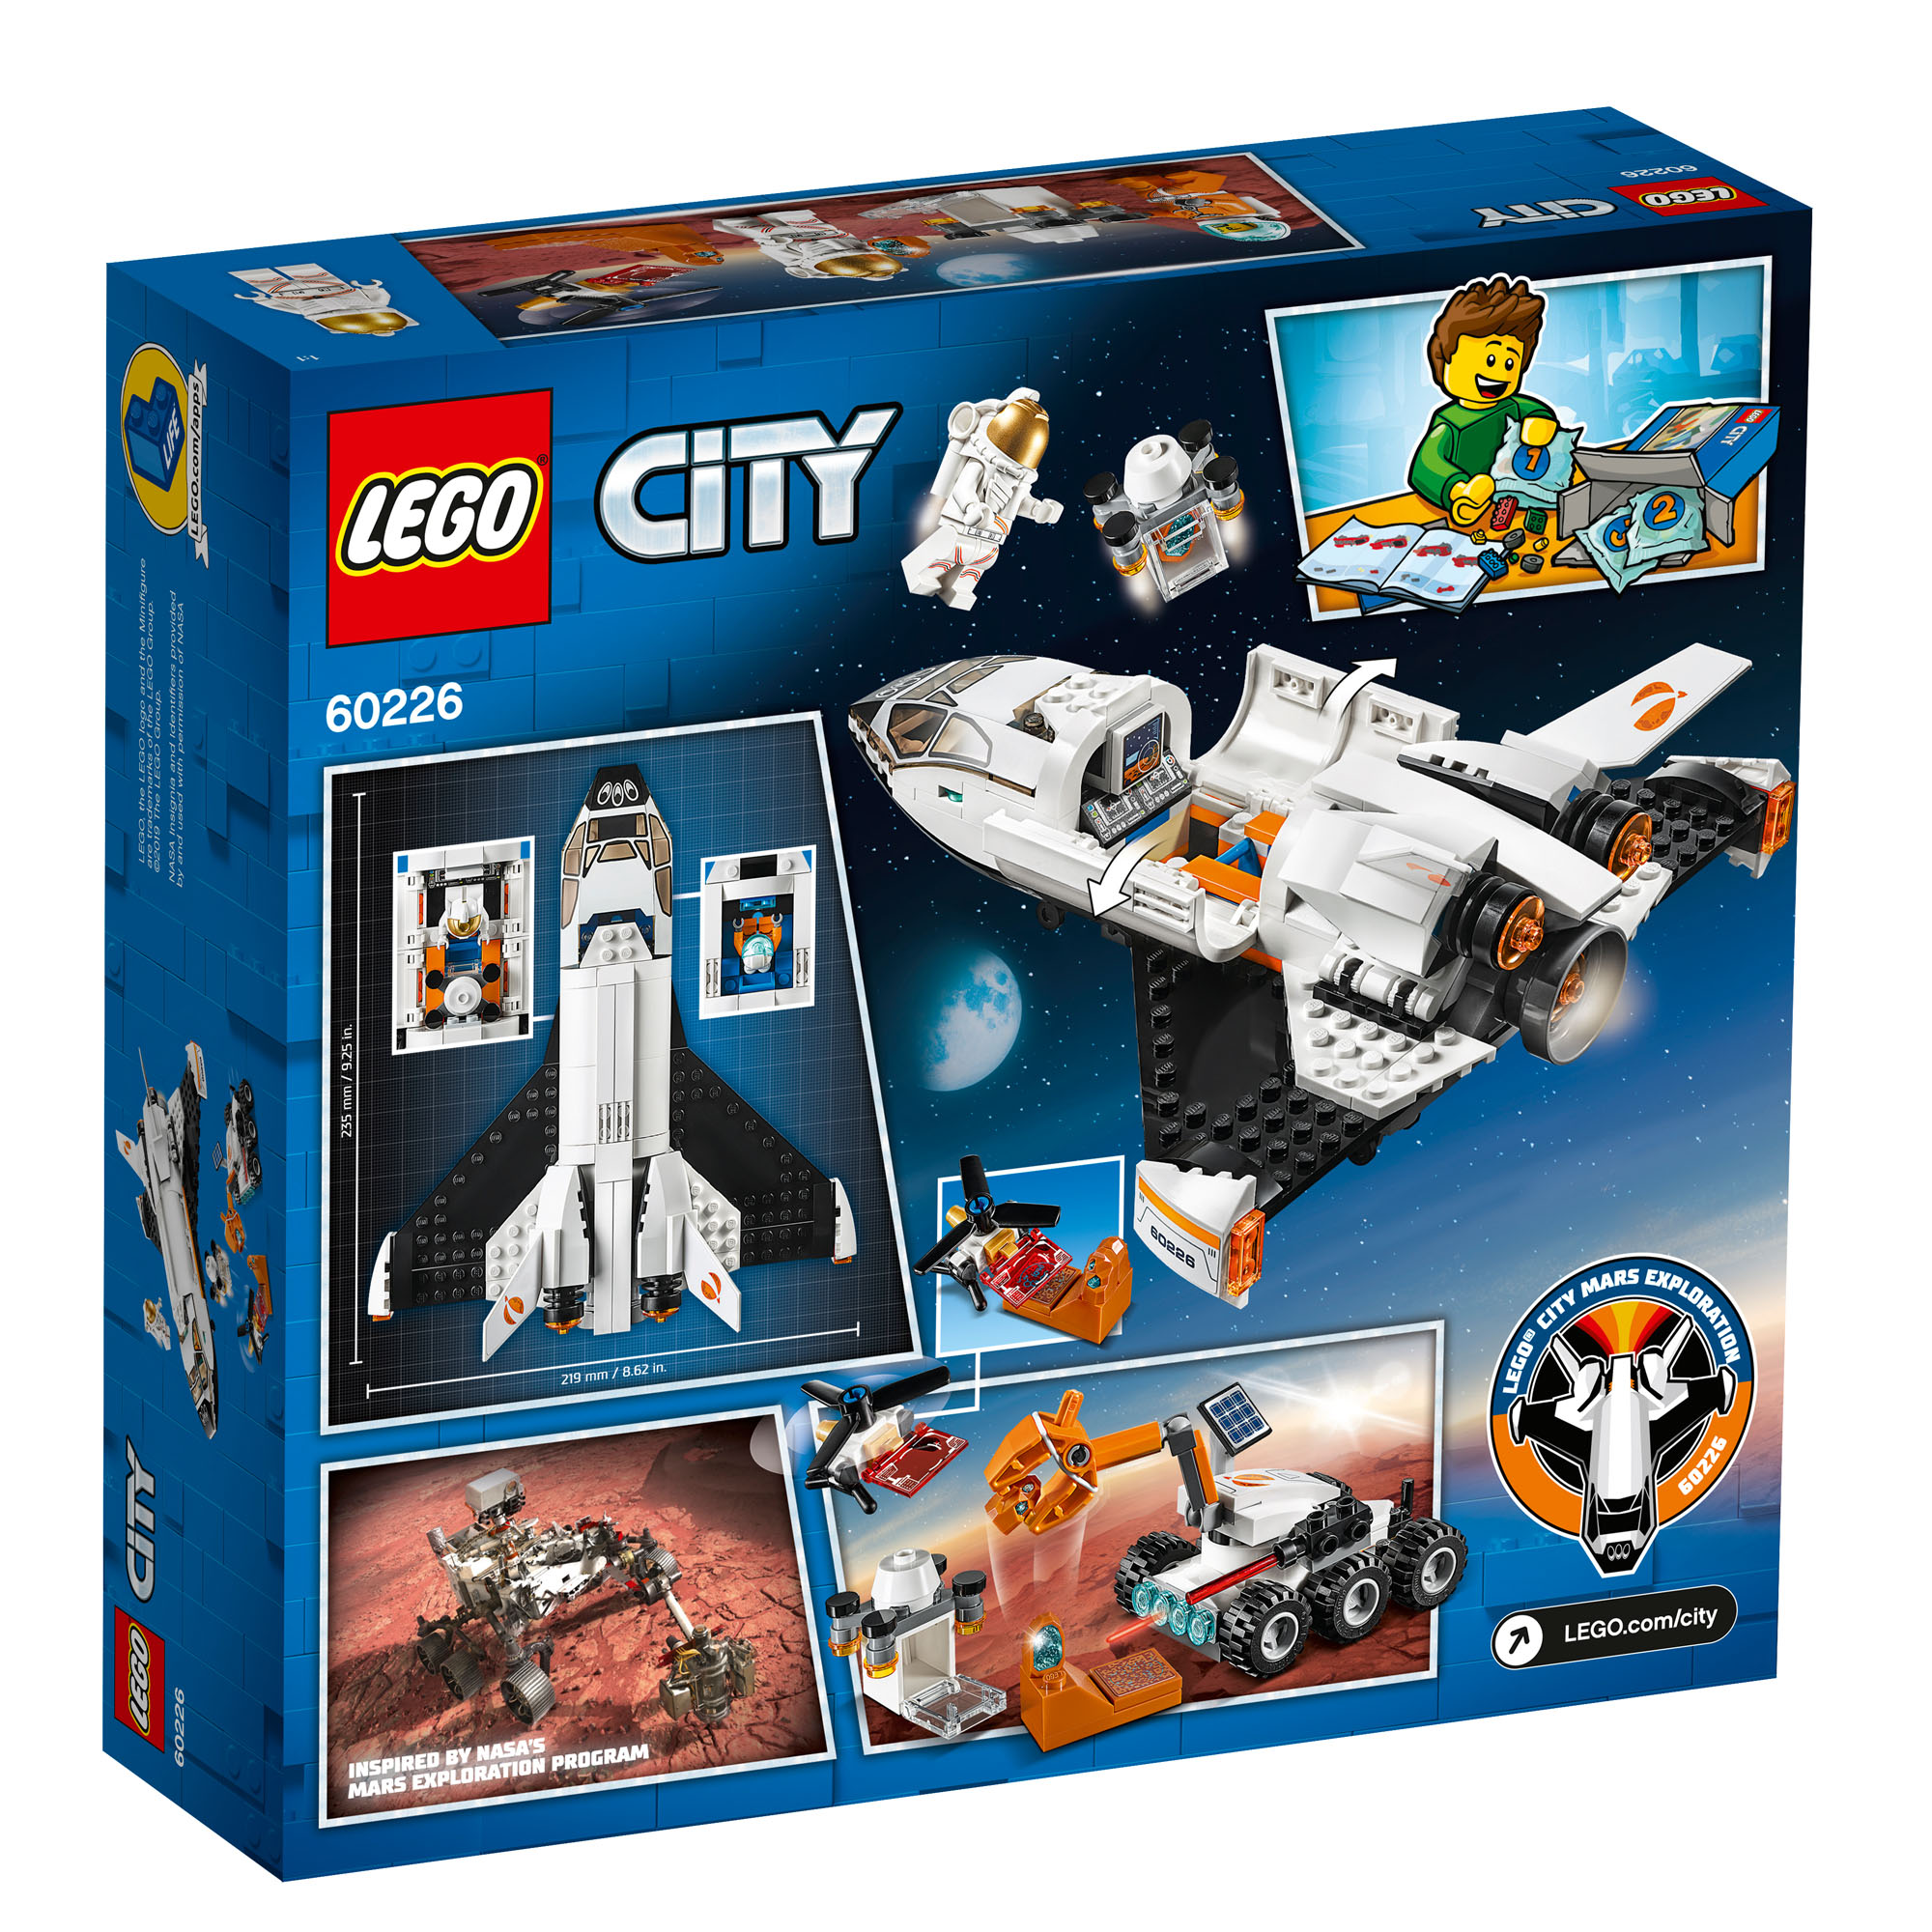 60226 LEGO City Space Port Mars Research Shuttle Spaceship ...